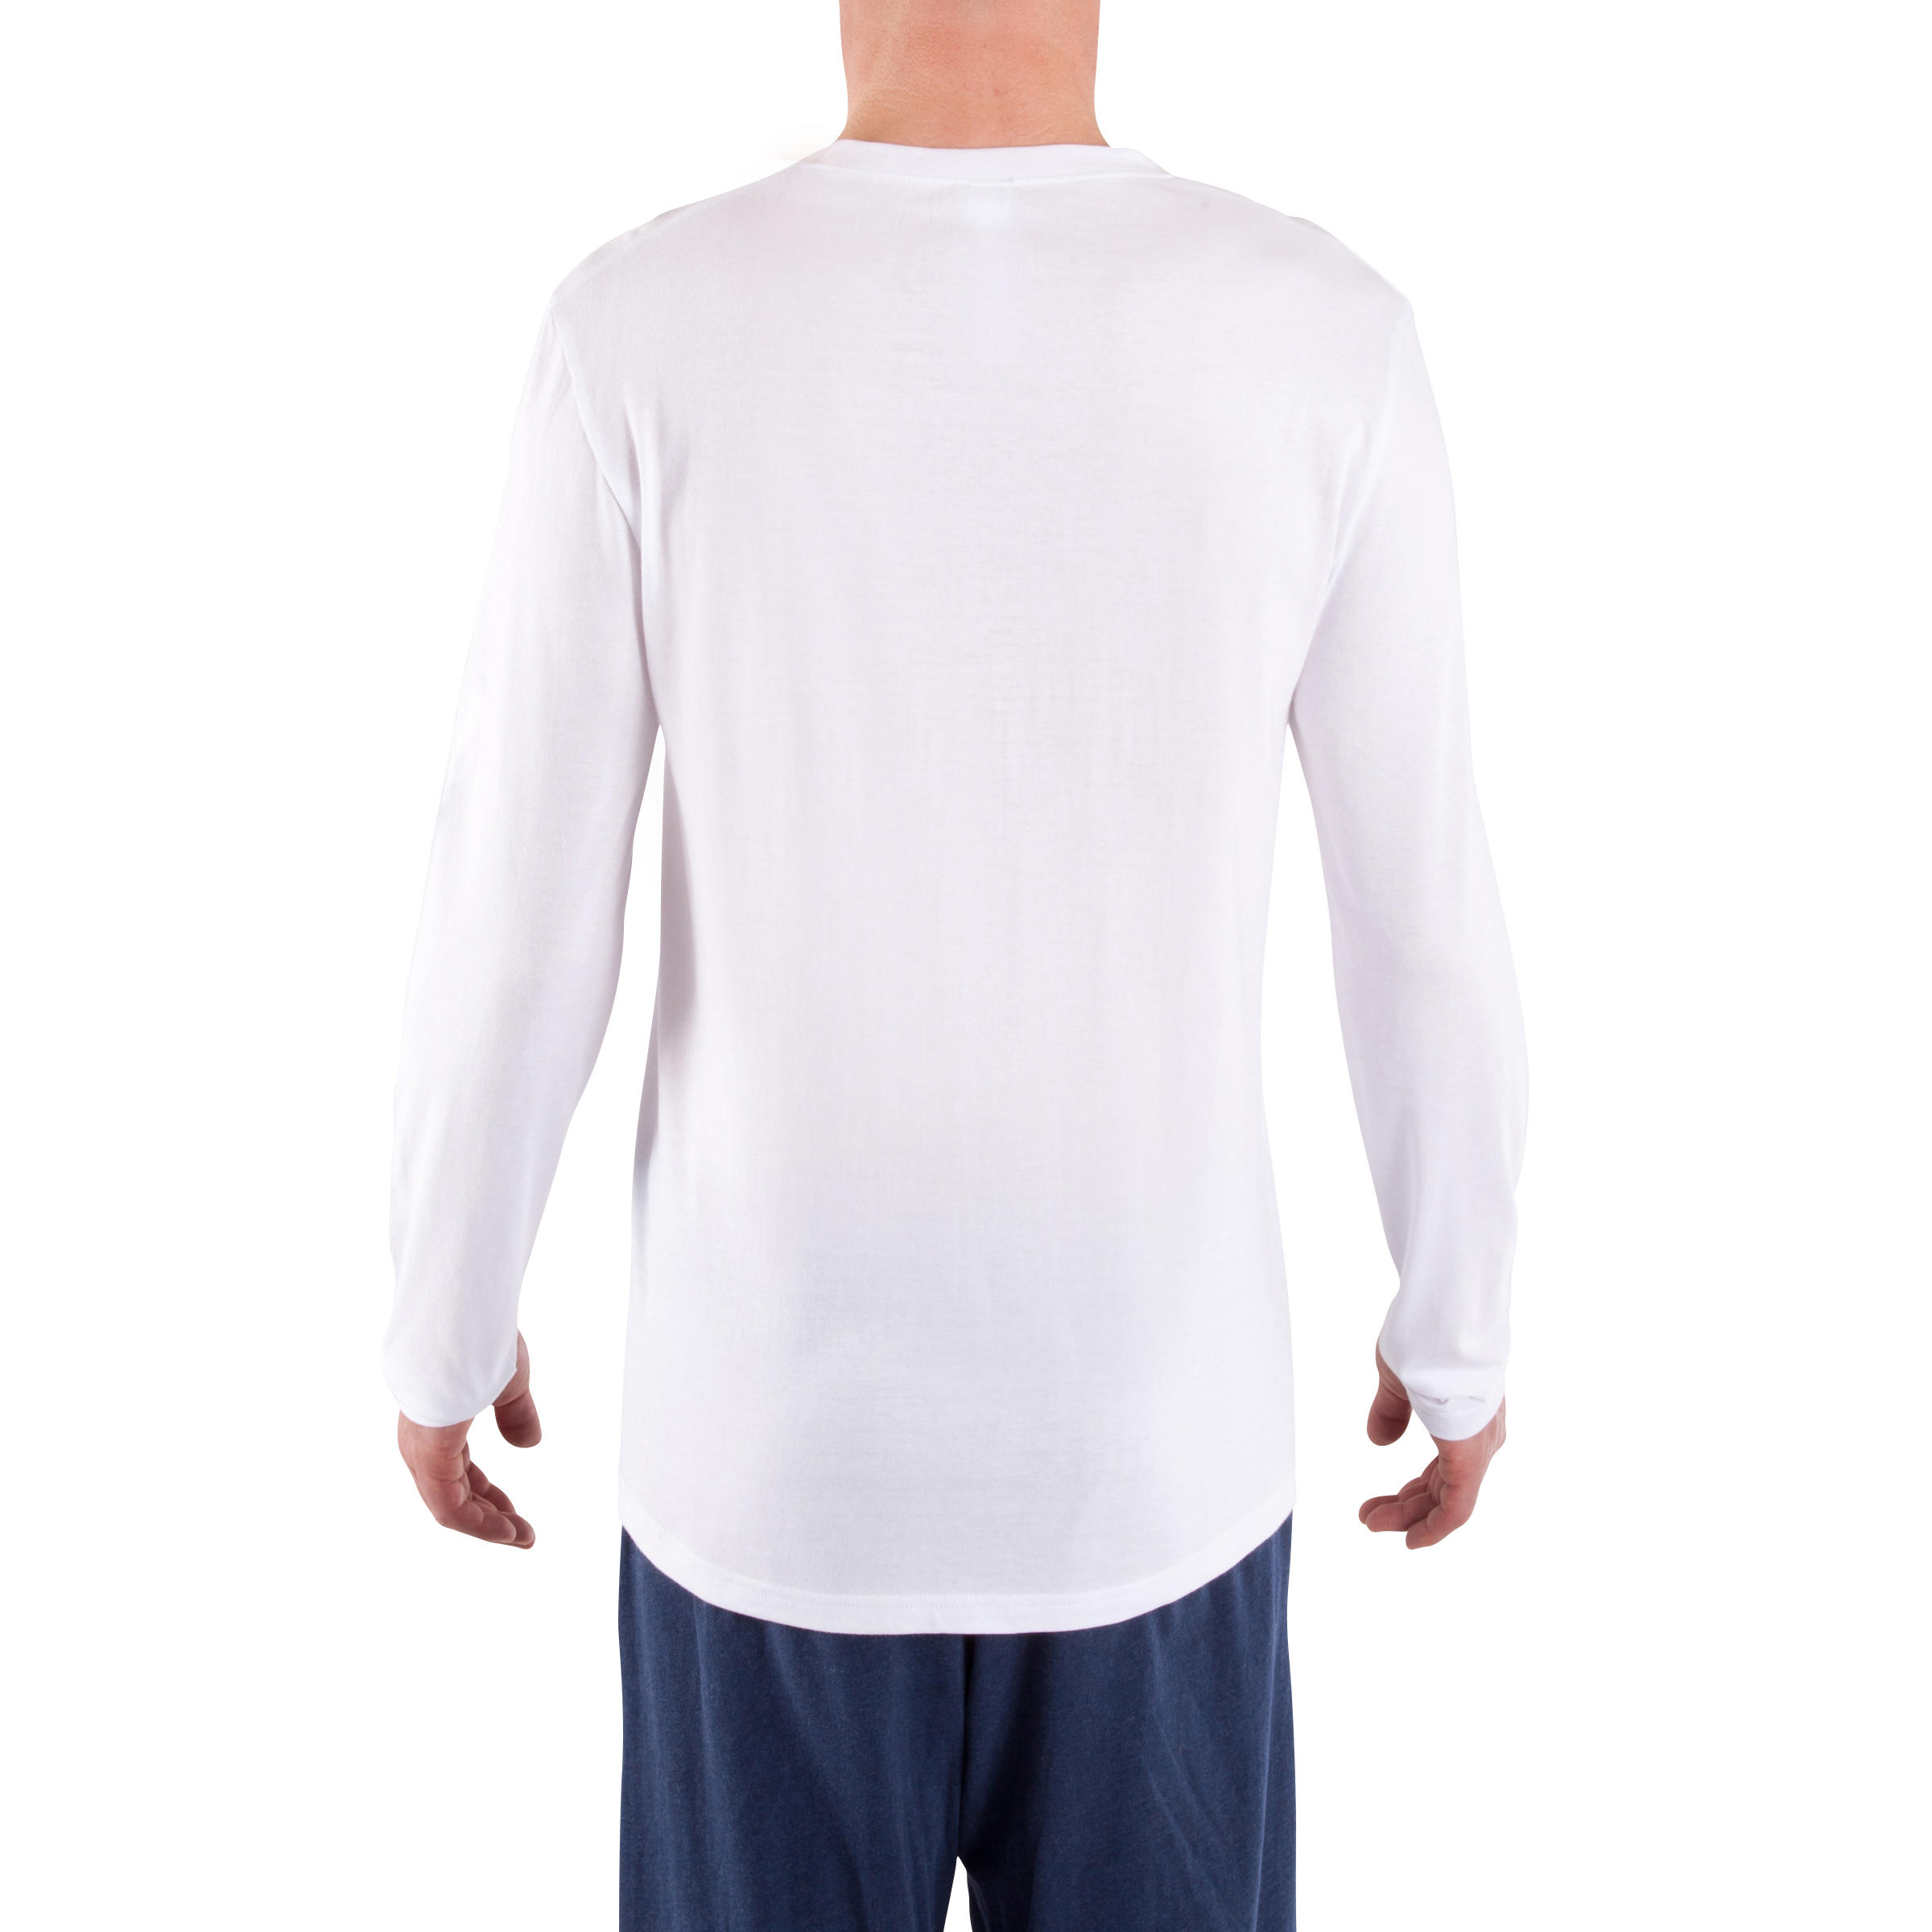 Gentle Gymnastics, Yoga and Pilates Long-sleeved T-shirt - White